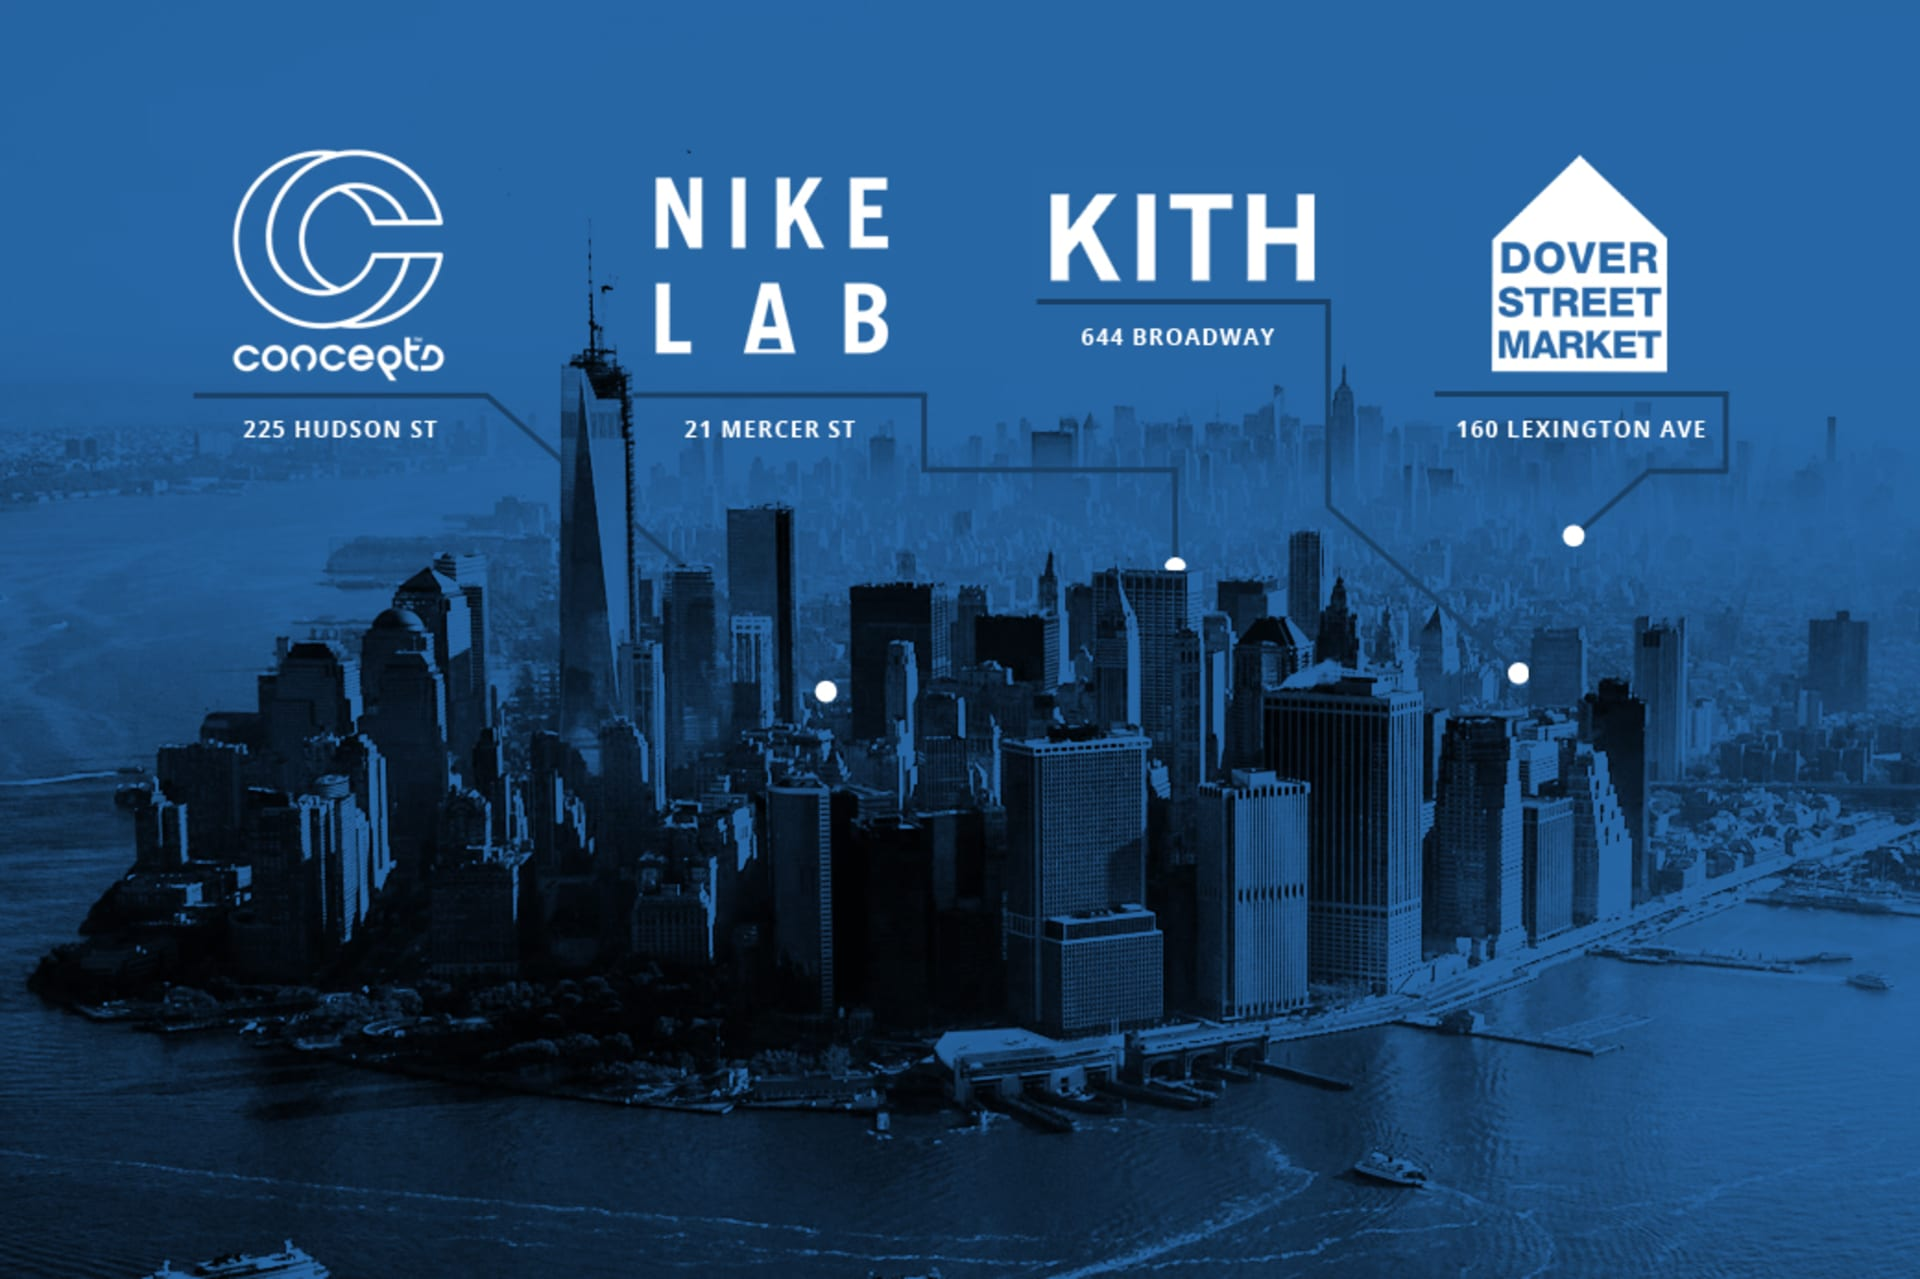 It isn t an understatement to call New York City one of the world s best  sneaker capitals. With so many choices and so many covetable models  dropping ... 51e372c586f3